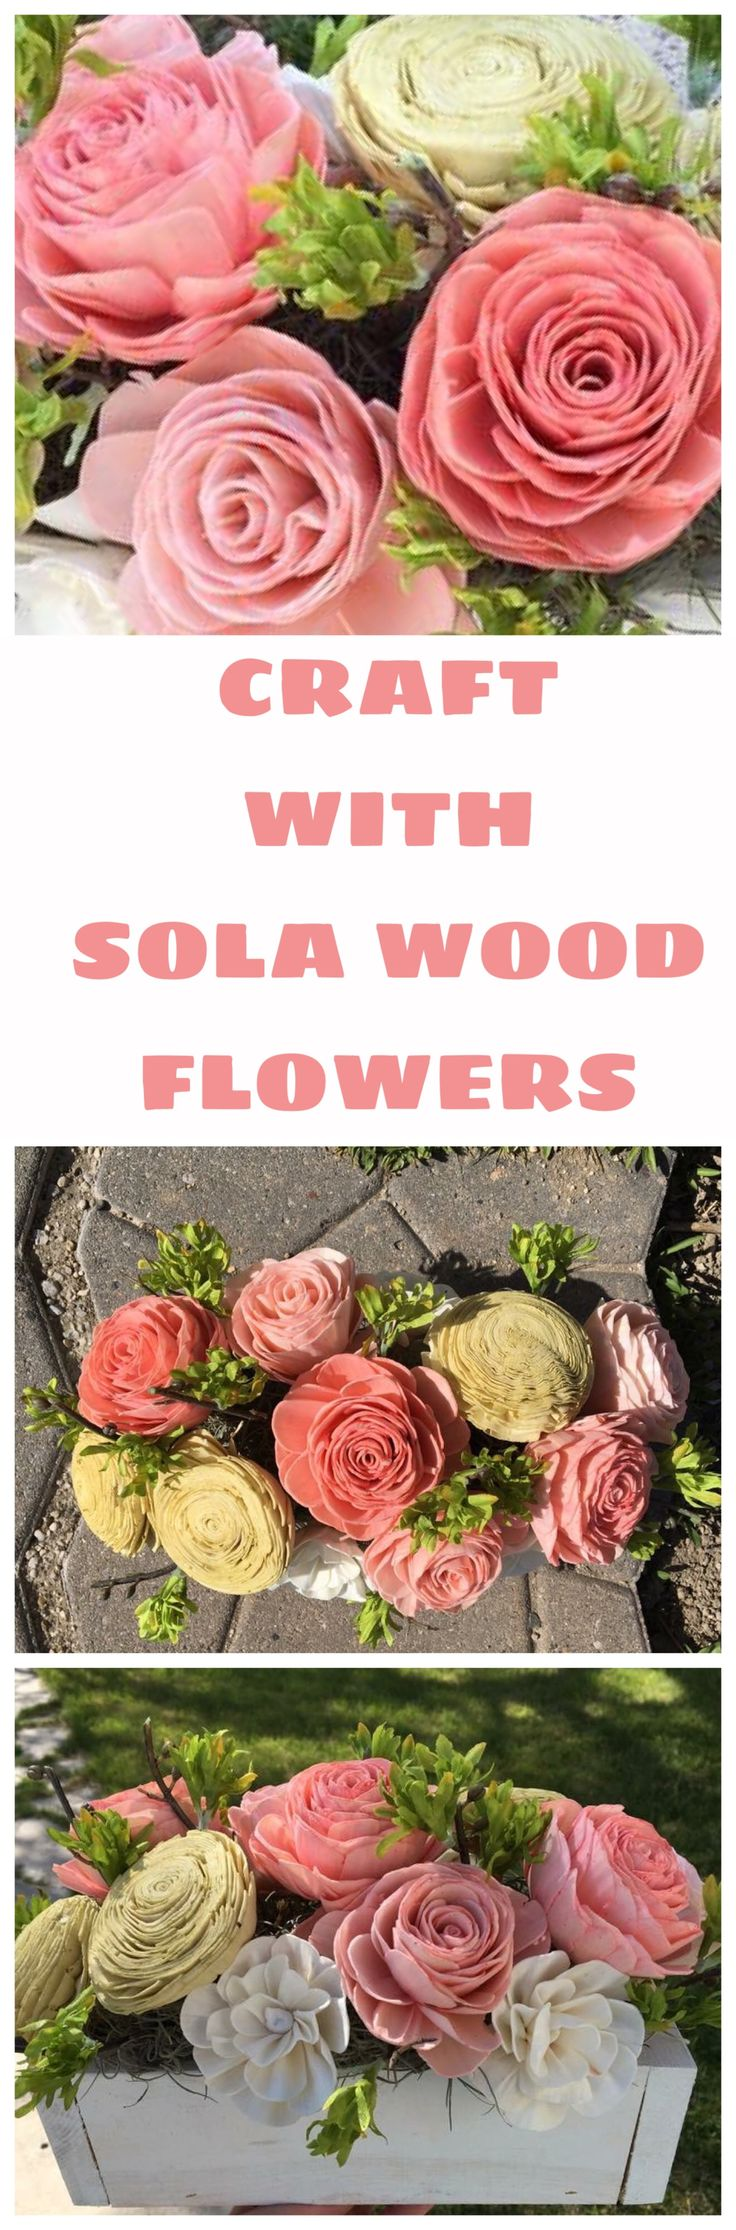 167 best sola wood flowers images on pinterest wood flowers sola wood flowers loose flowers for crafting bouquets centerpieces home decor and much izmirmasajfo